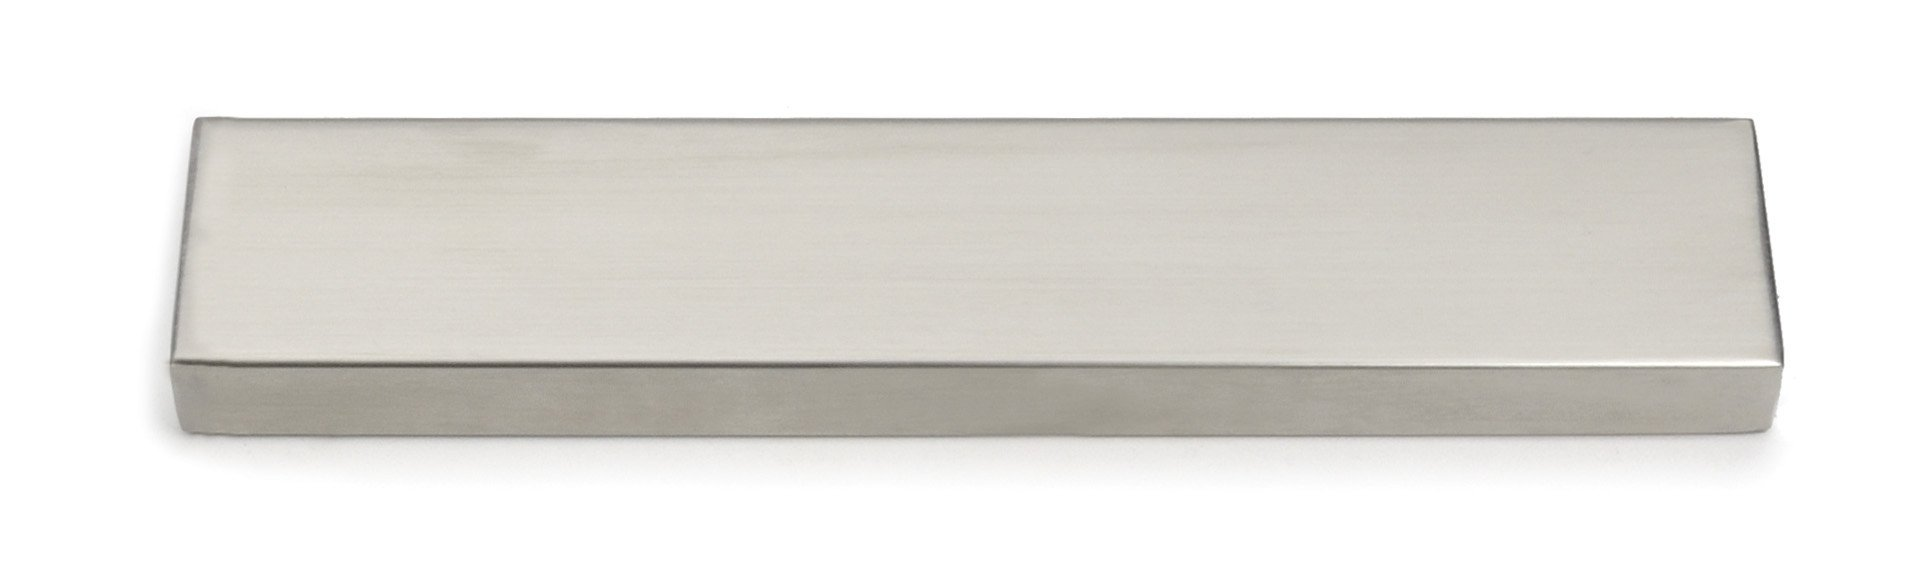 RSVP Endurance 18/8 Stainless Steel Deluxe Magnetic Knife Bar, 10-inches by RSVP International